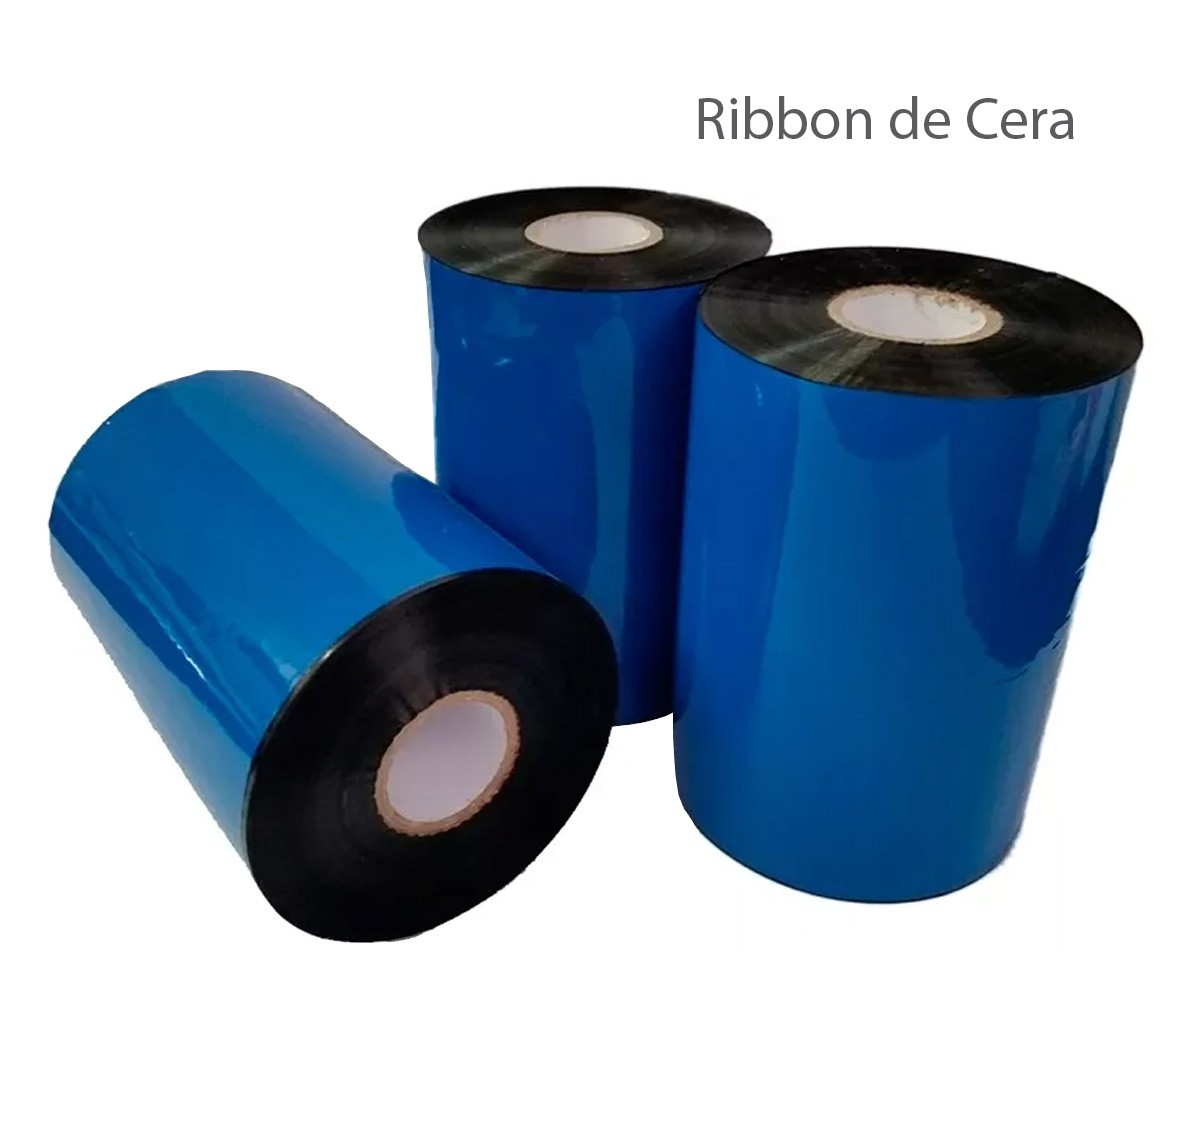 Ribbon de Cera 110mm x 300 de largura - Armor